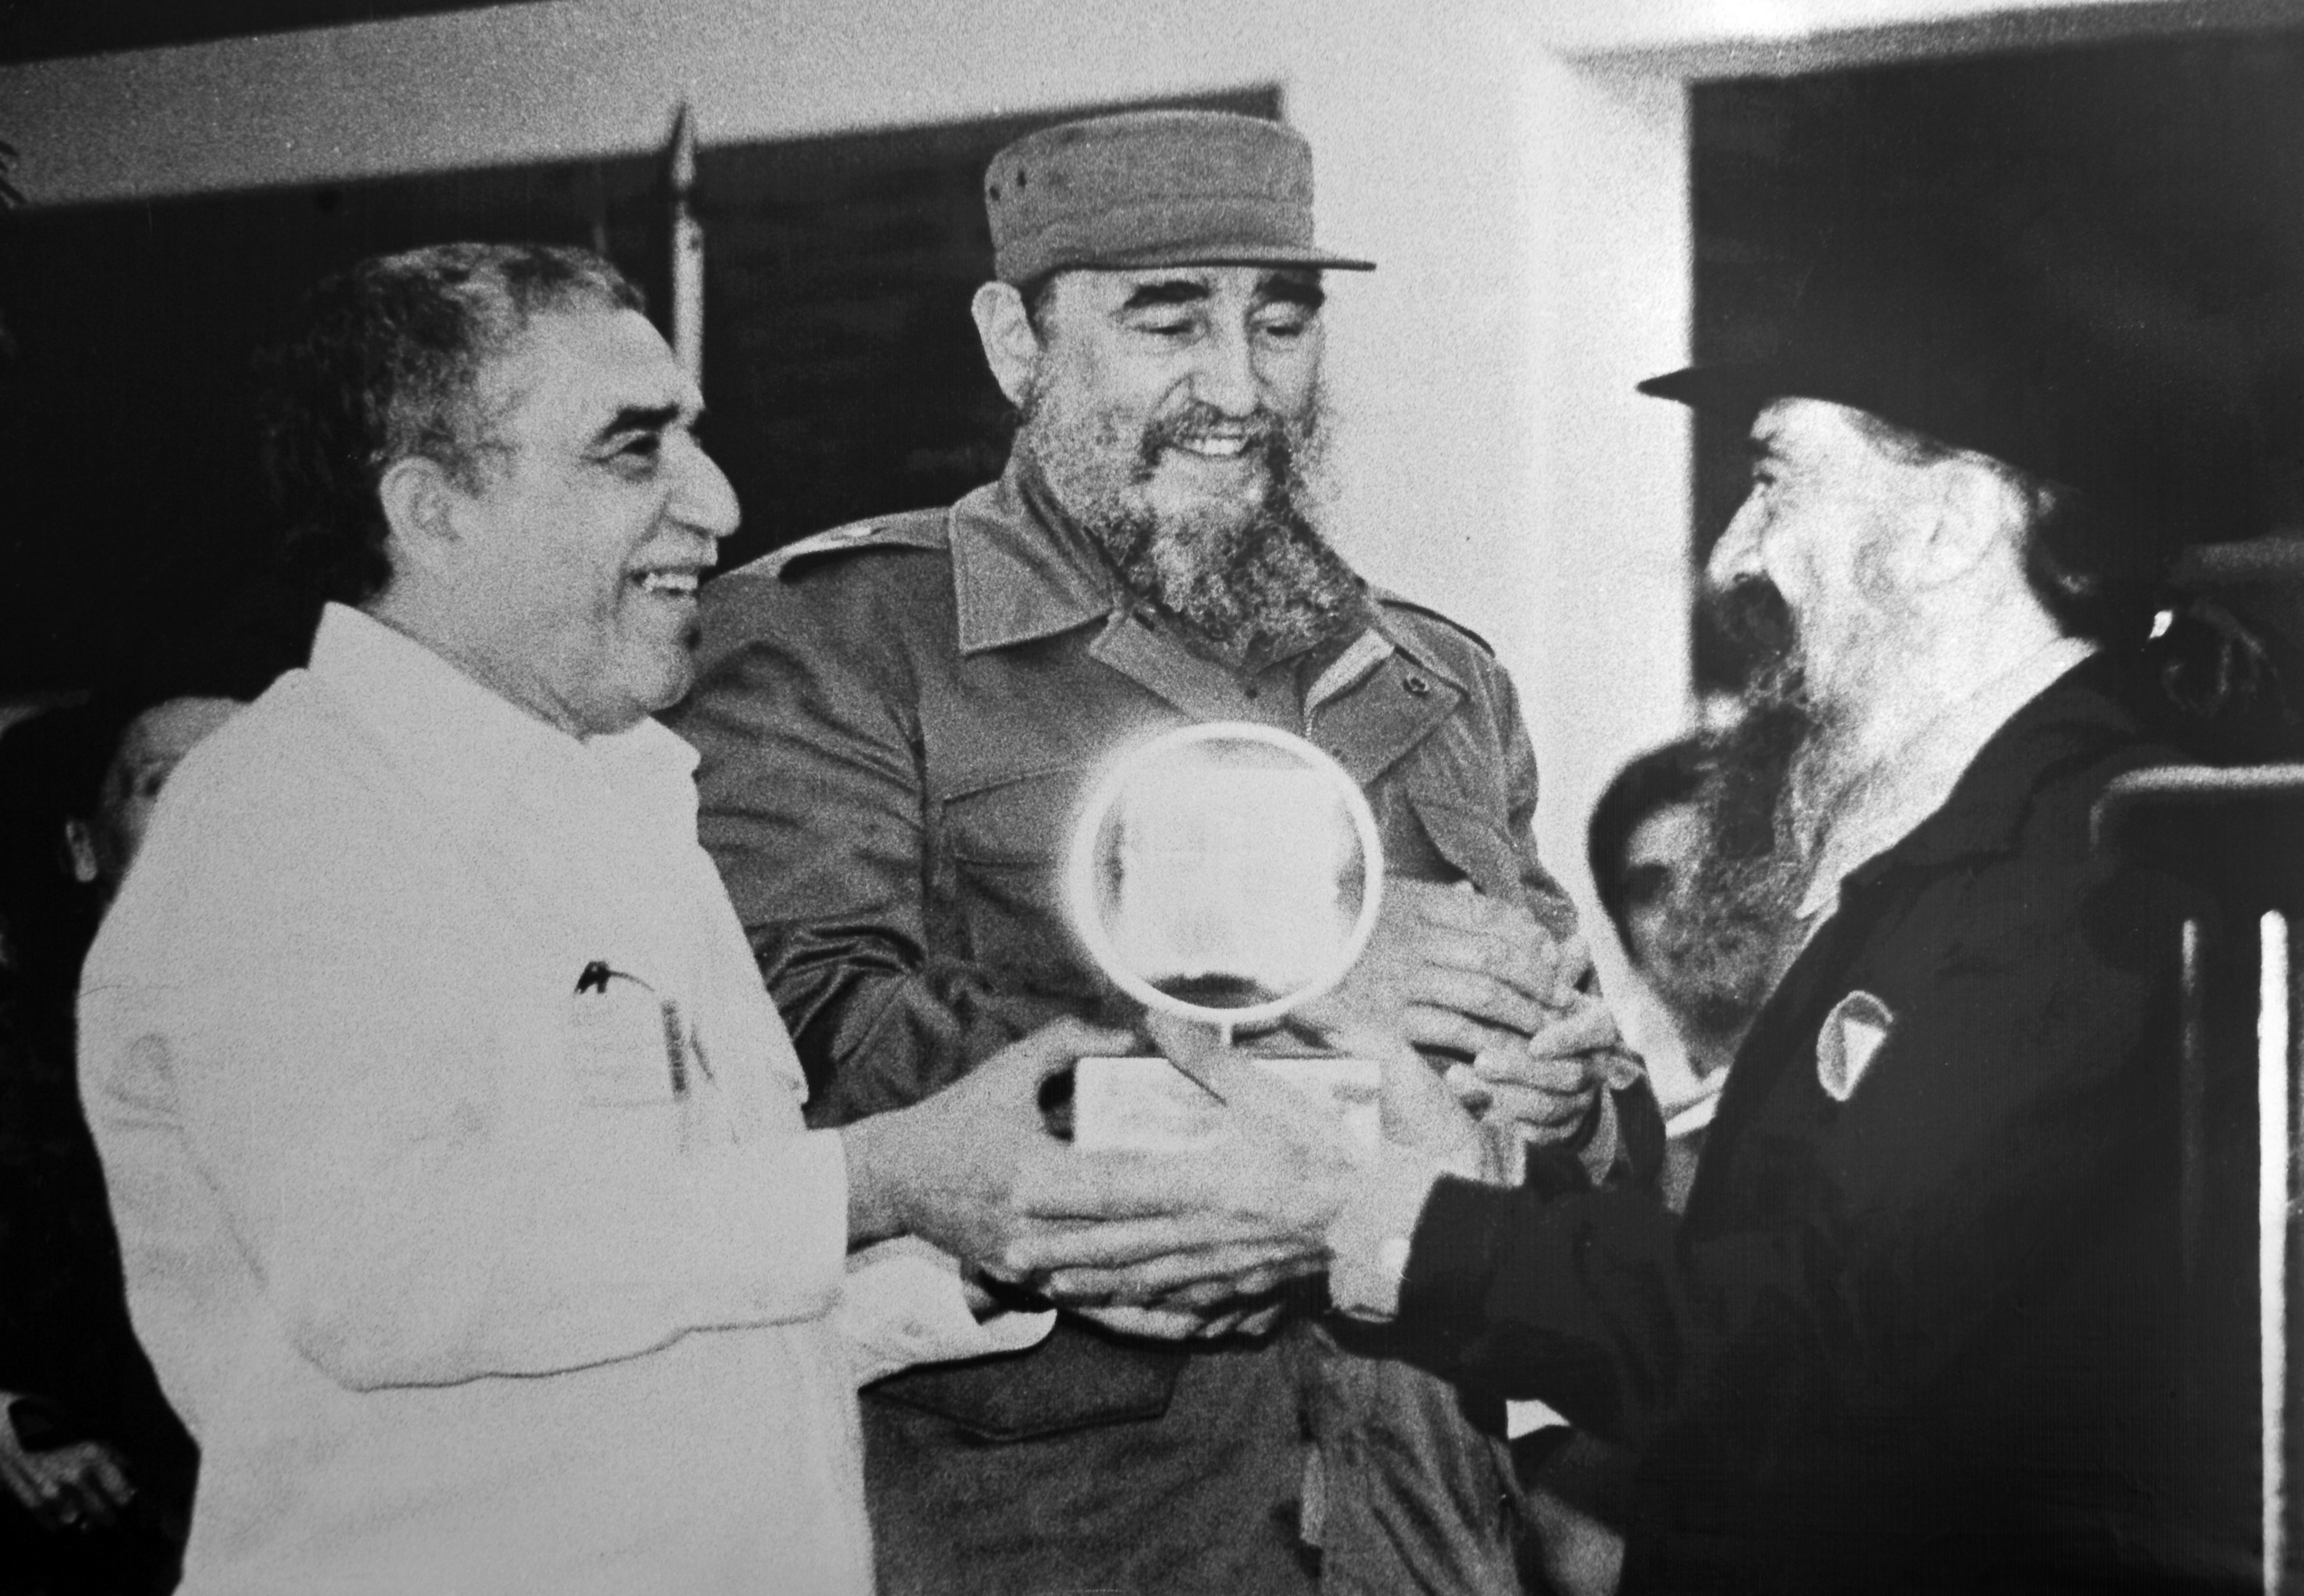 Former Cuban President Fidel Castro (C), Gabriel Garcia Marquez (L) and movie director Fernando Birri (R) in San Antonio de los Banos, Havana on Dec. 15, 1986.